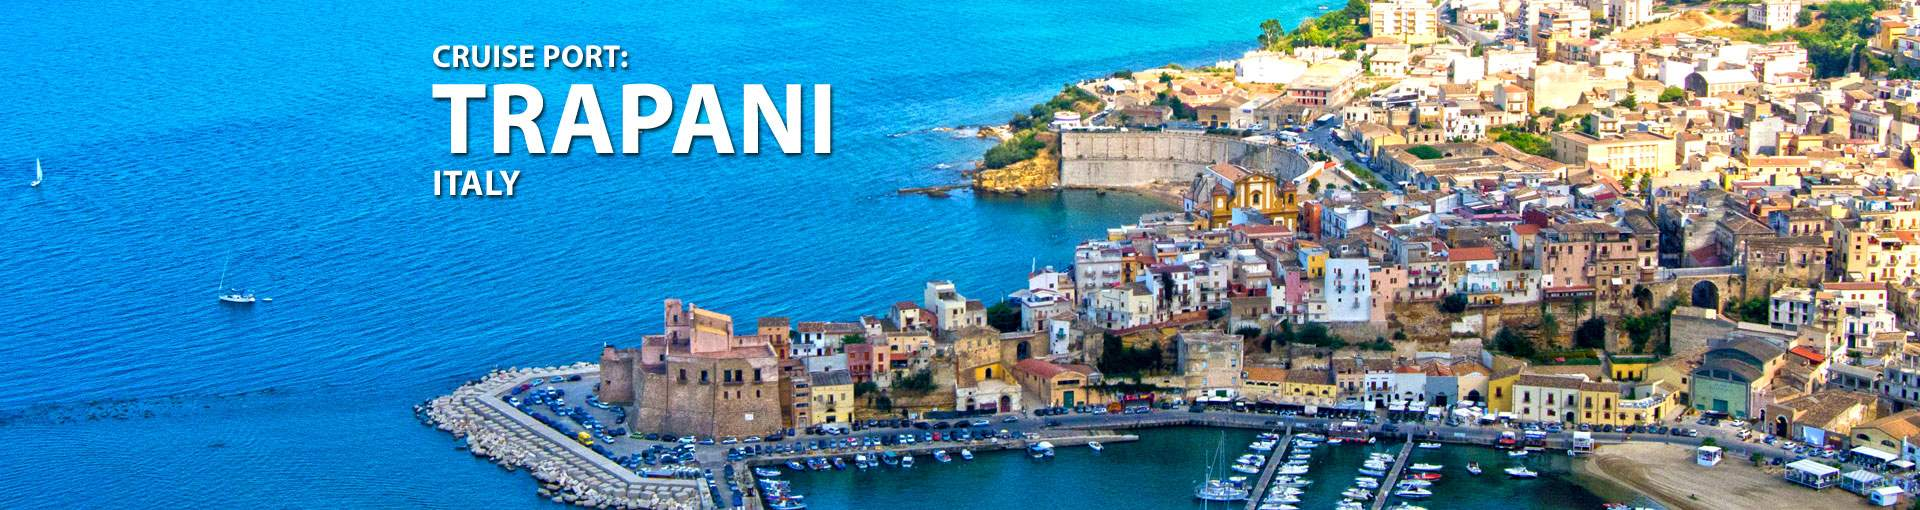 Cruises to Trapani, Italy